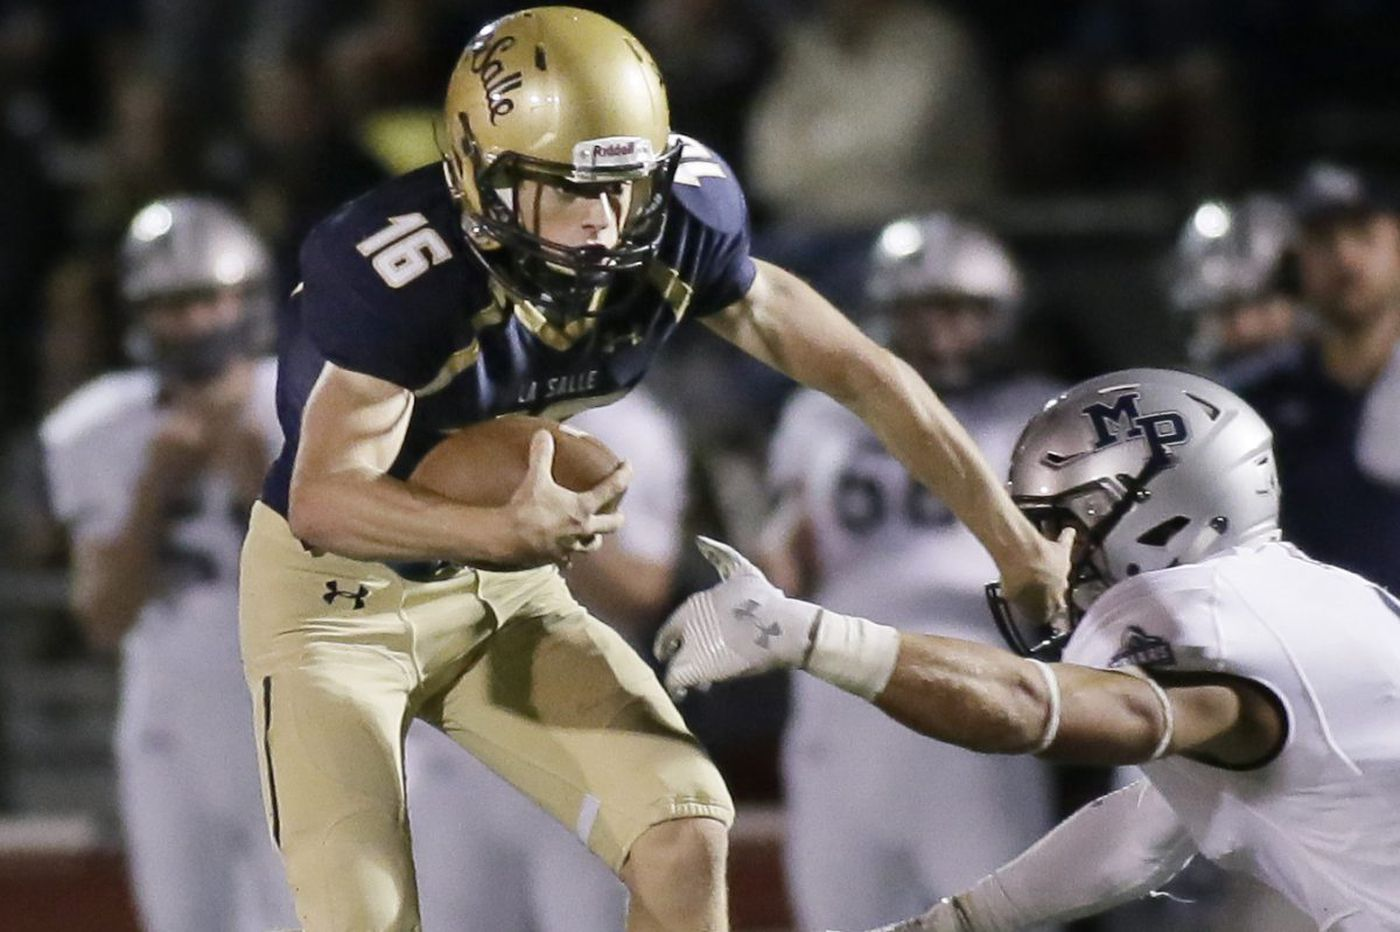 PIAA playoff primer: La Salle quarterback Danny Solecki (knee) likely out vs. St. Joseph's Prep